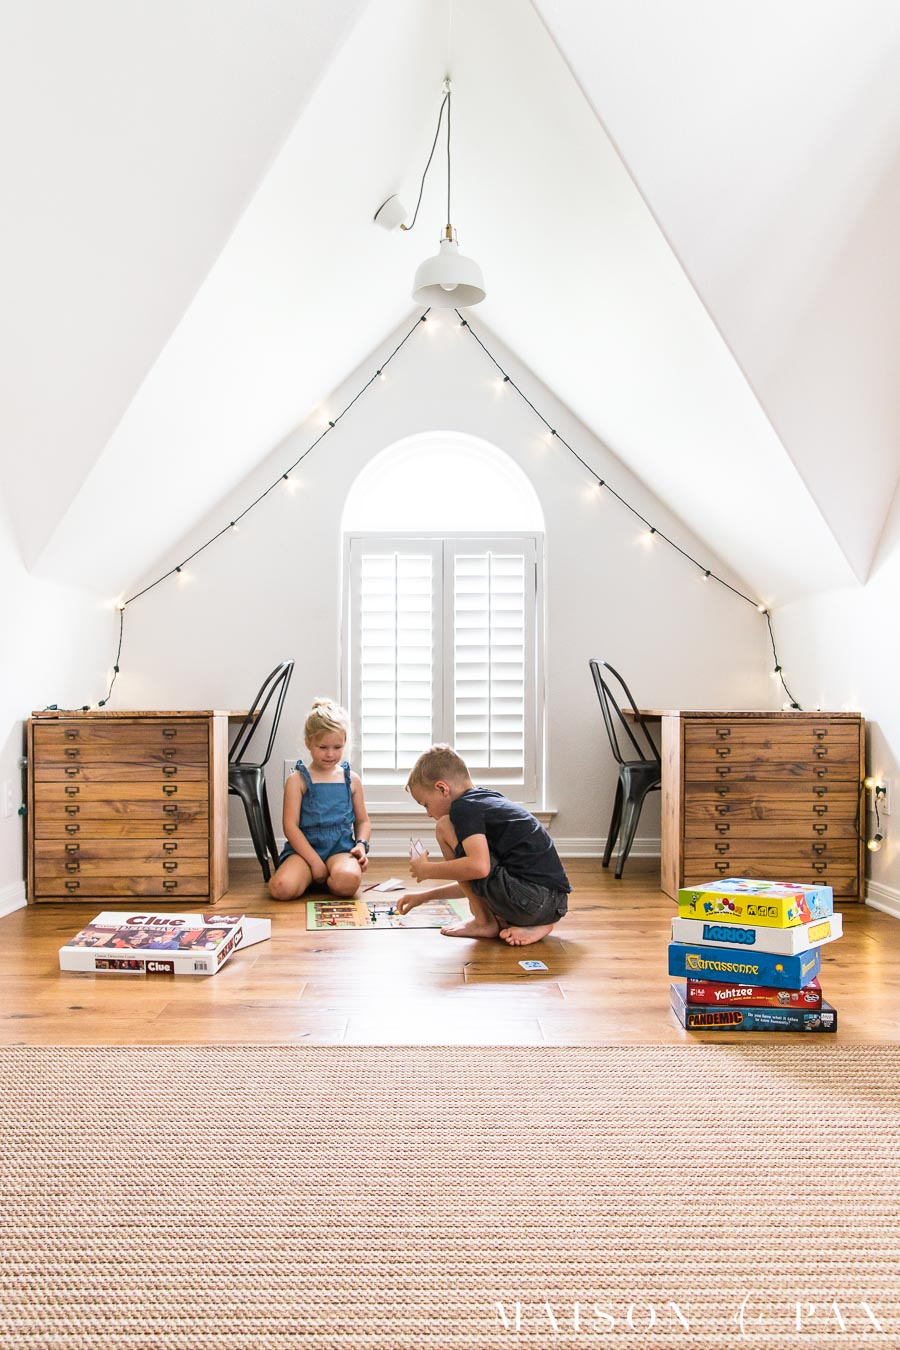 boy and girl playing board game on floor of playroom floor with peaked ceiling | Maison de Pax